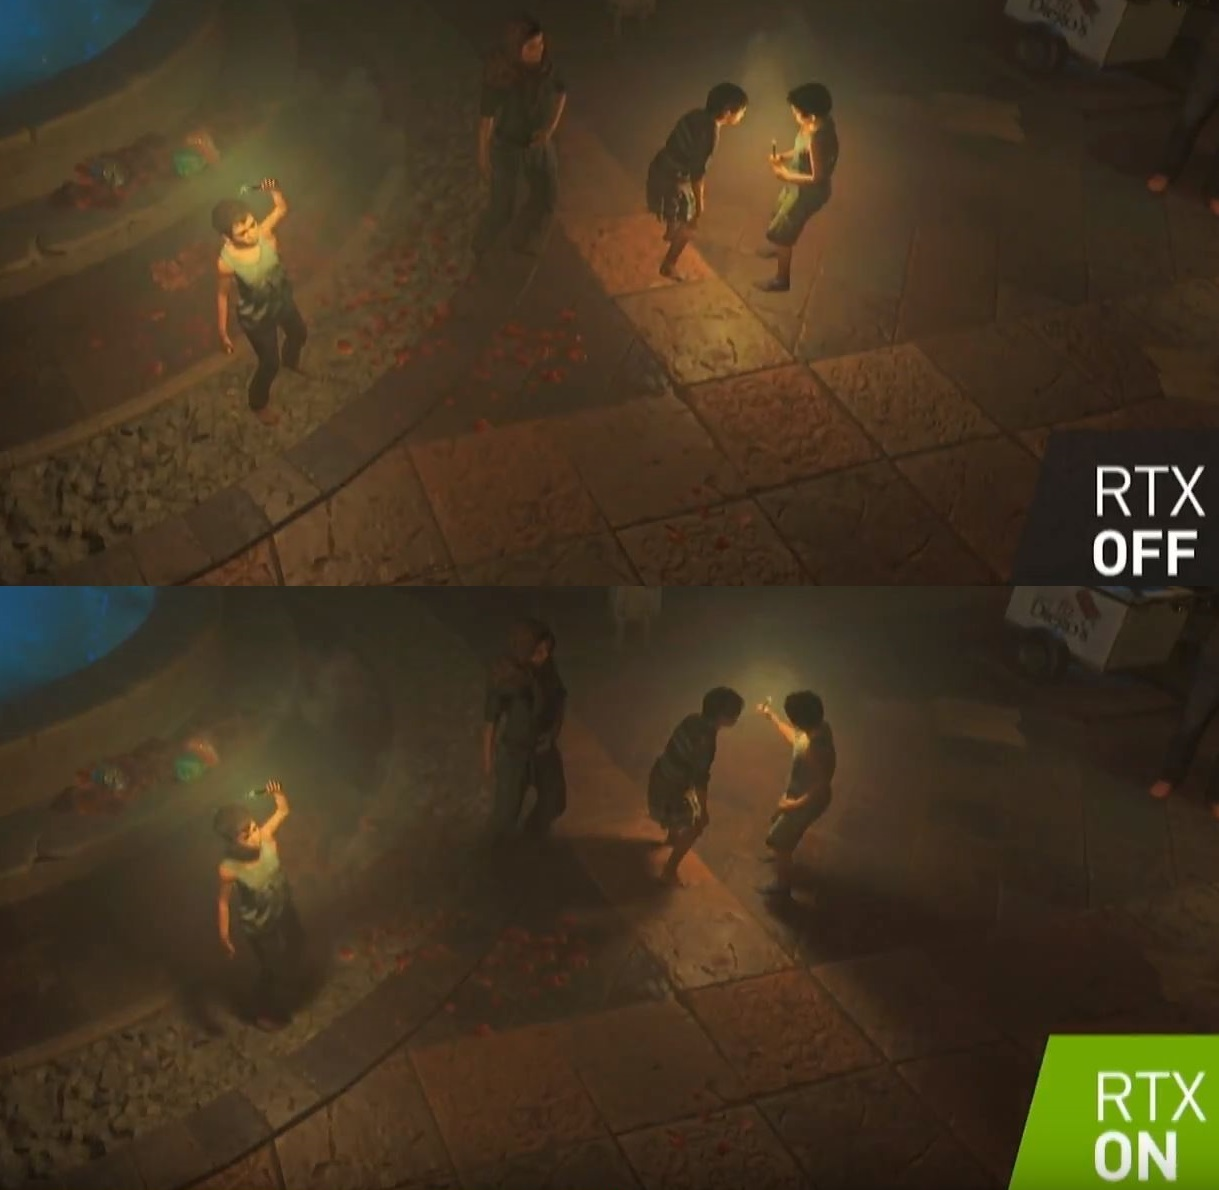 Improved Point Light Shadows in Shadow of the Tomb Raider Using NVIDIA RTX Technology